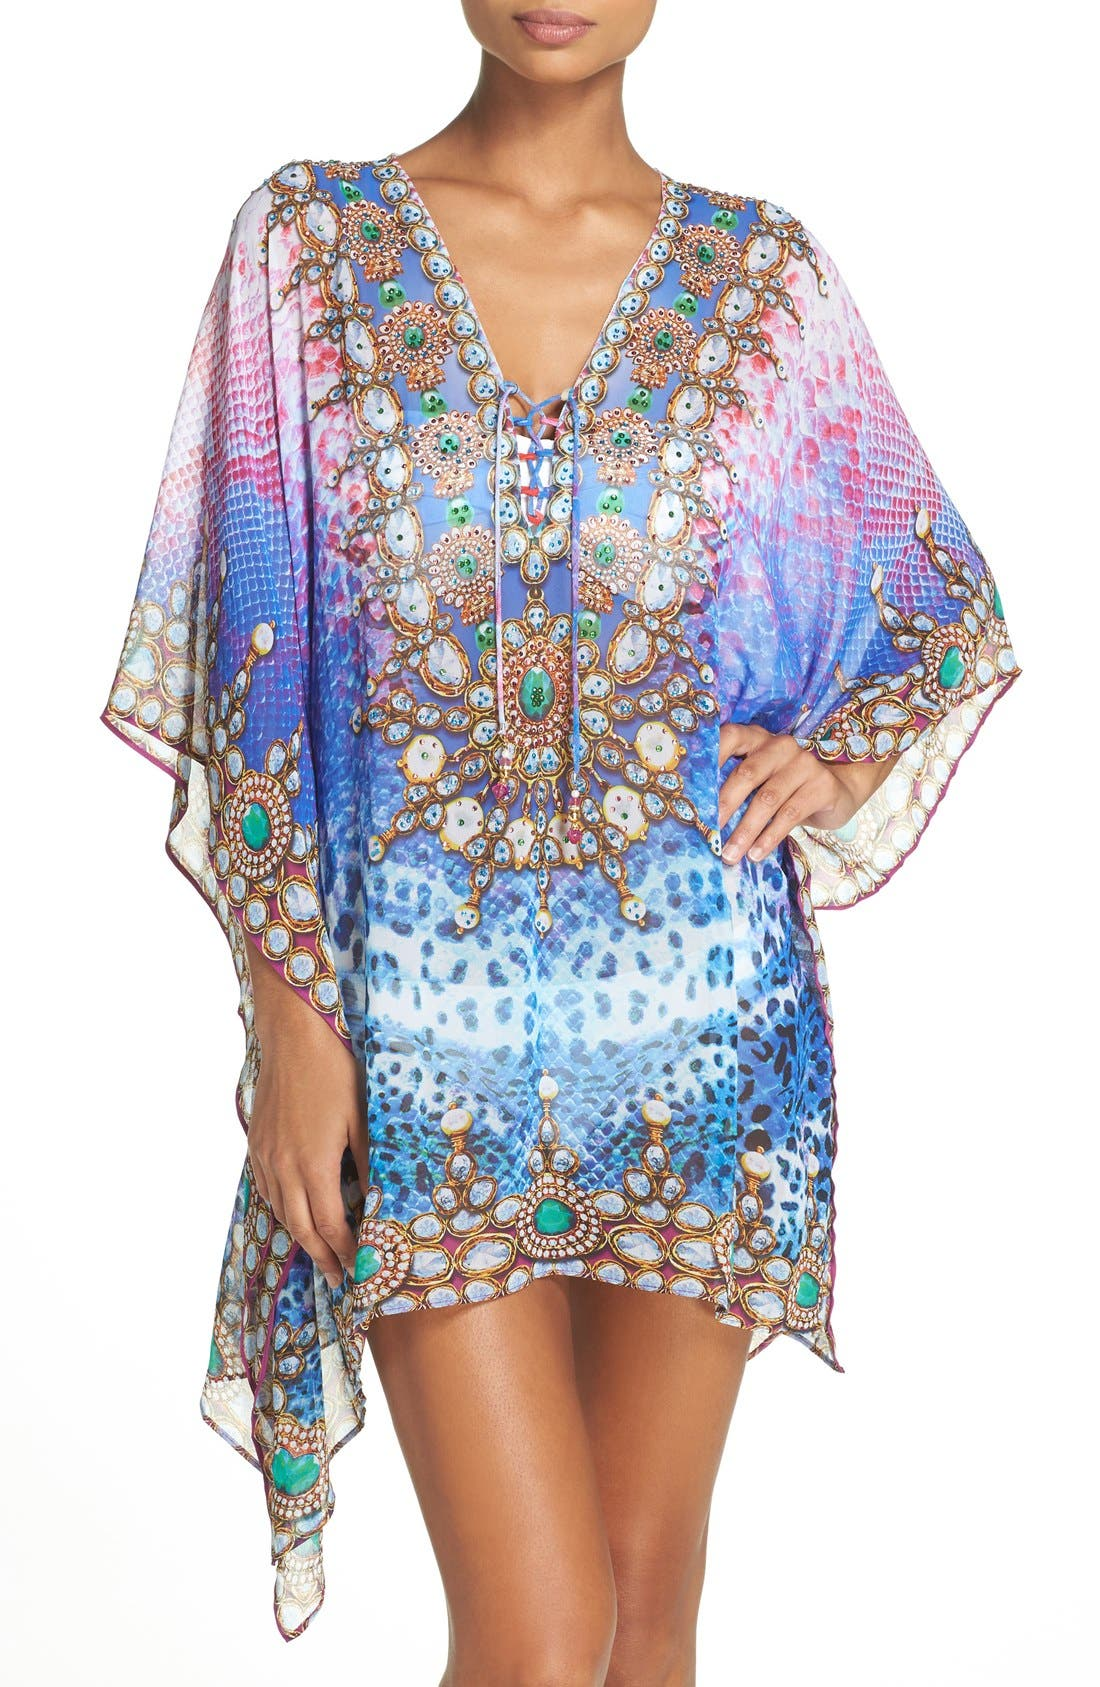 Bora Bora Short Kaftan,                             Main thumbnail 1, color,                             Multi Blue/ Pink